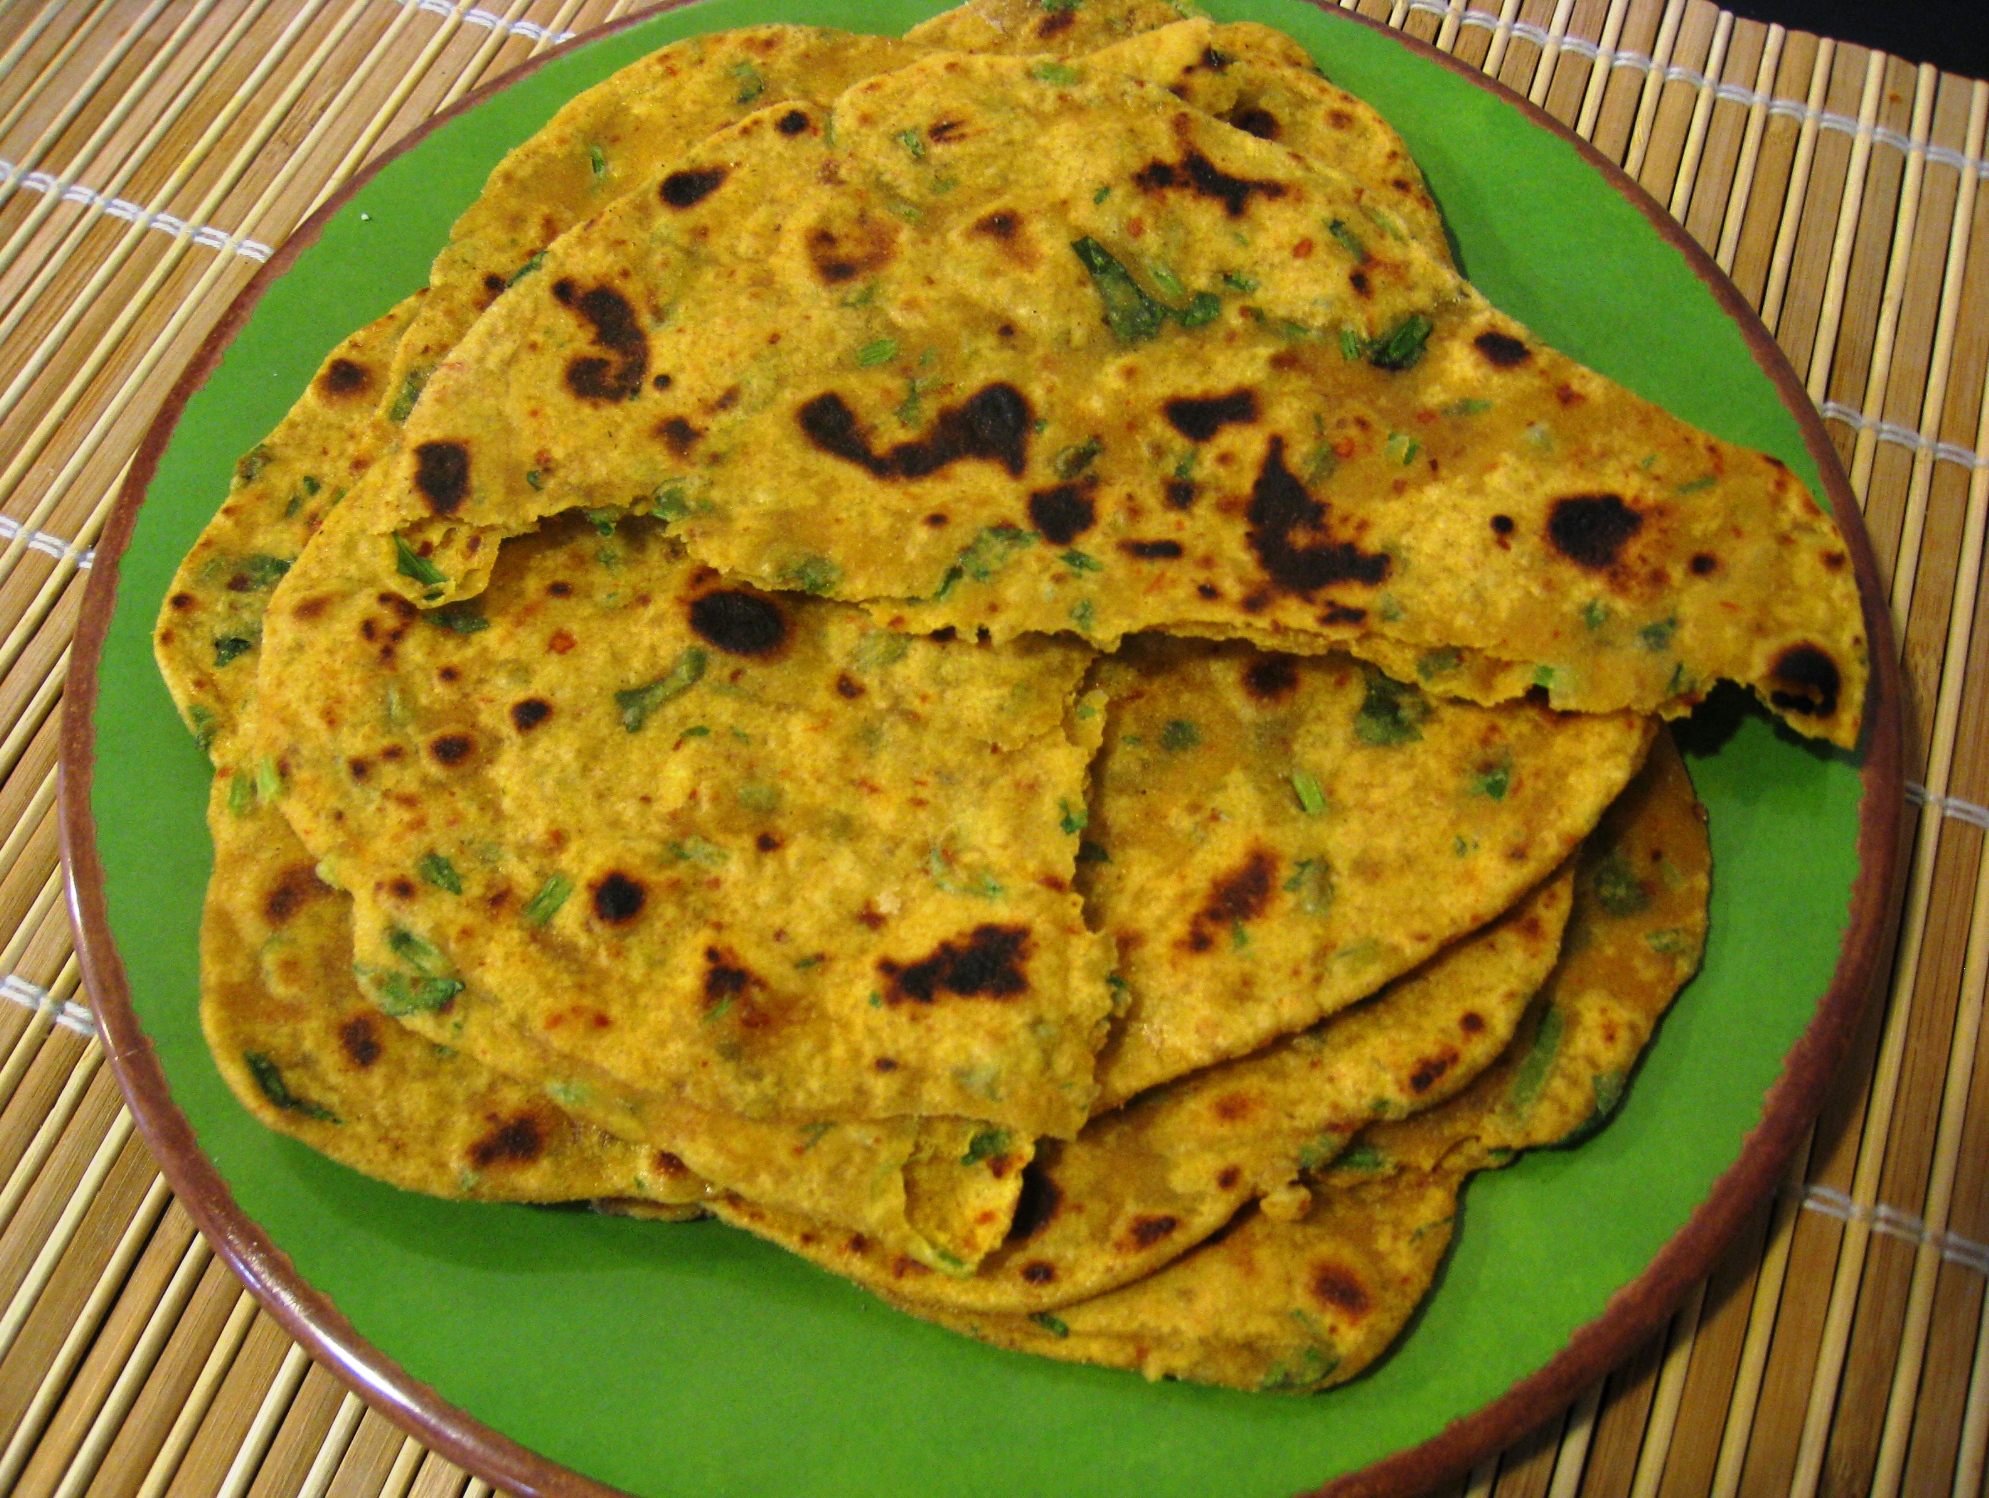 Mixed Flour & Root Vegetables Paratha/Flatbread Recipes — Dishmaps